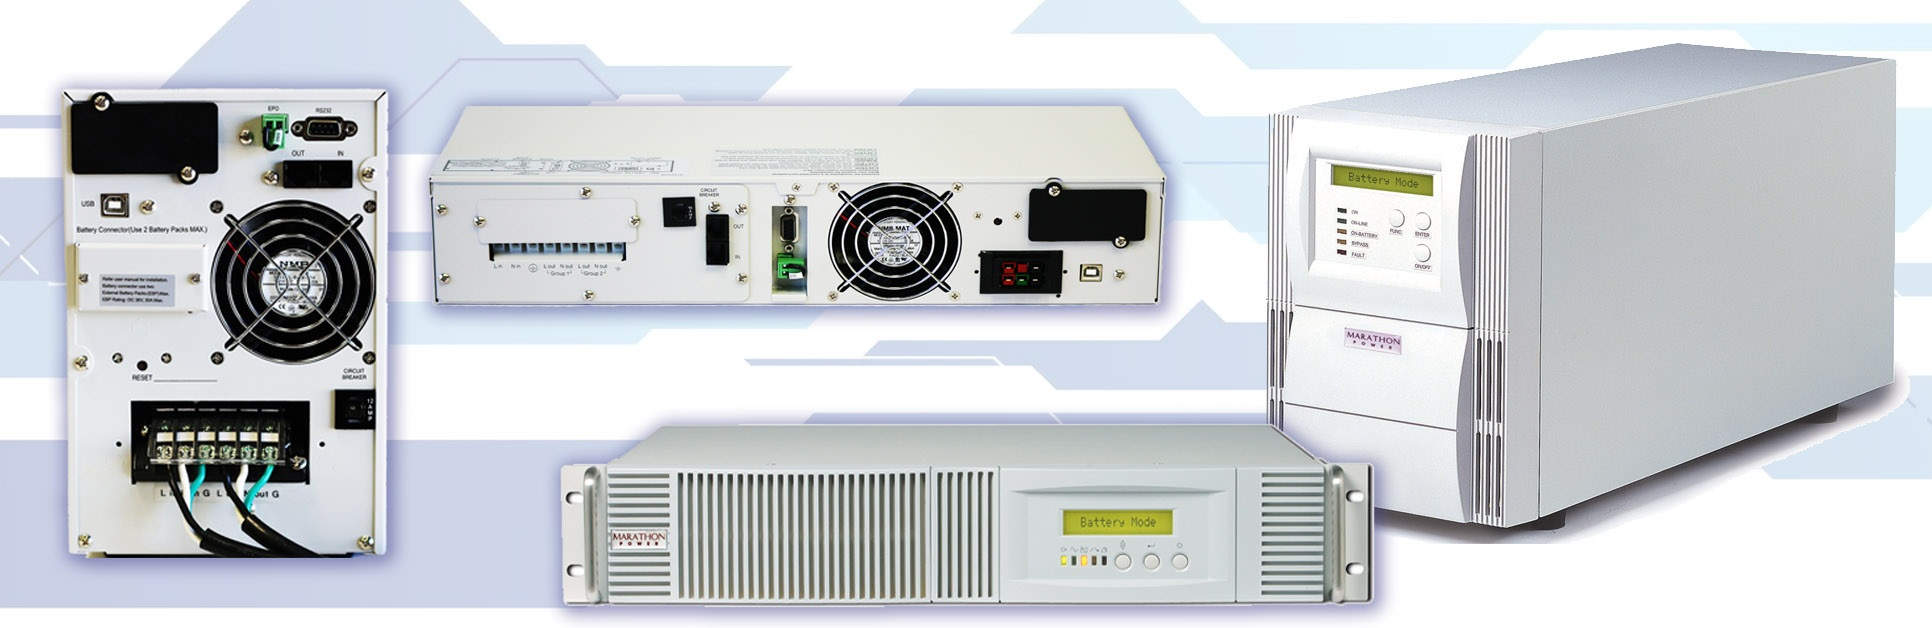 700VA - 12kVA TRUE ON-LINE UPS - True on-line double conversion topologyTrue sine-wave output with less than 3% THDOutput voltage regulation to within +/- 2%High Efficiency (HE) & Free-run modeEPO (Emergency Power Off) port